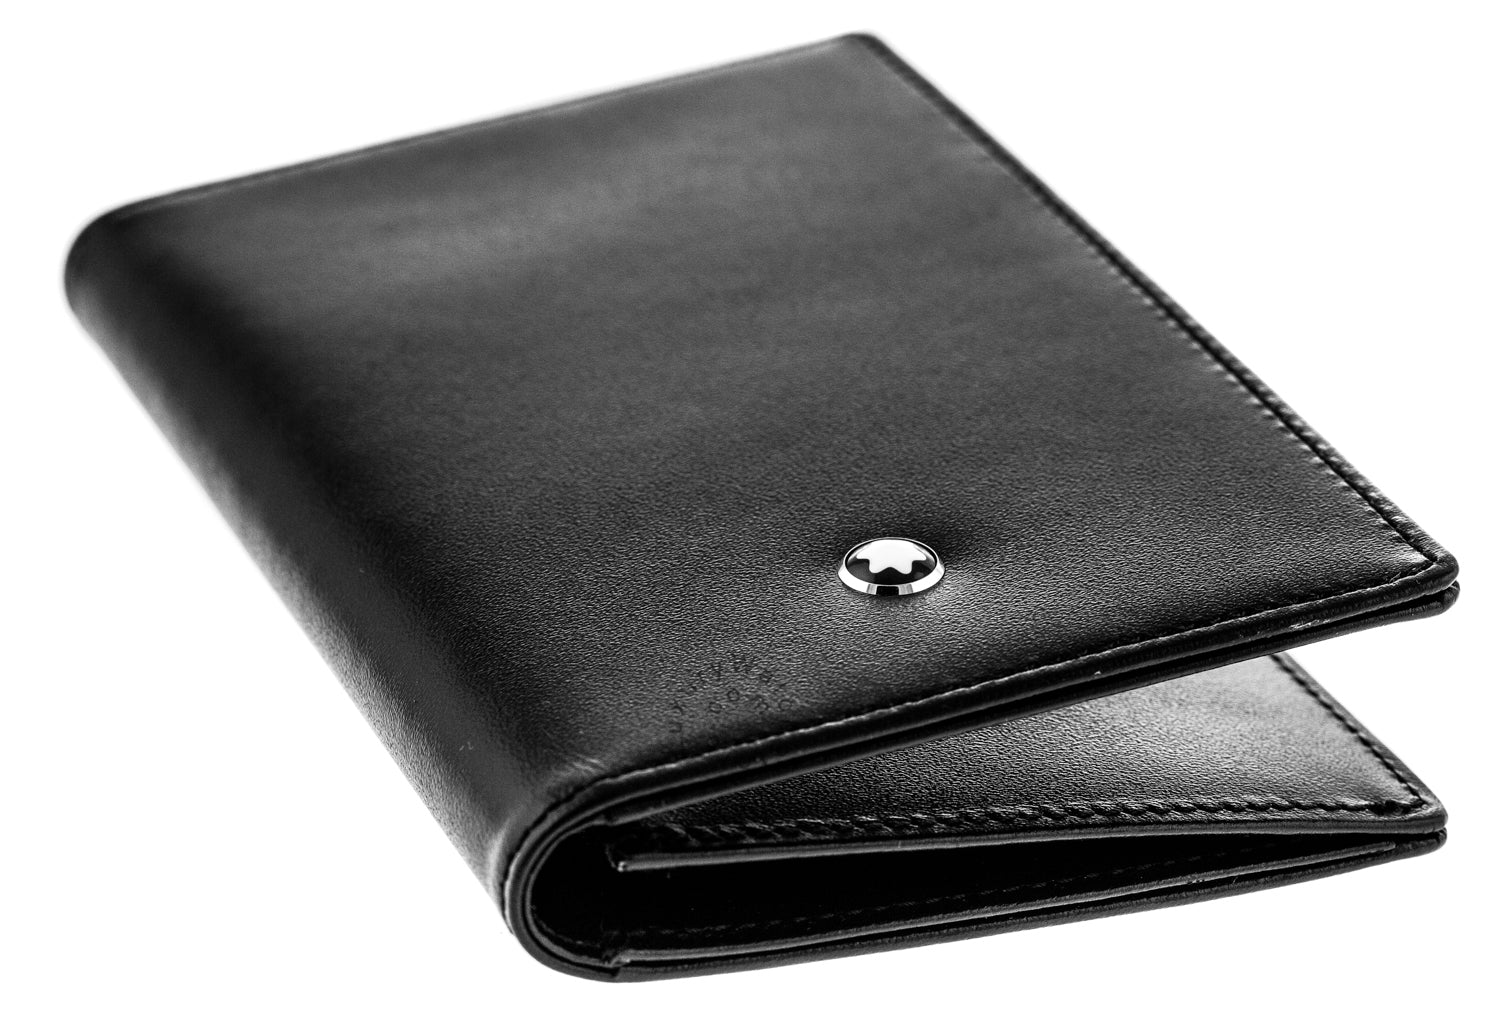 Montblanc 14108 Meisterstück Business Card Holder Leather Wallet